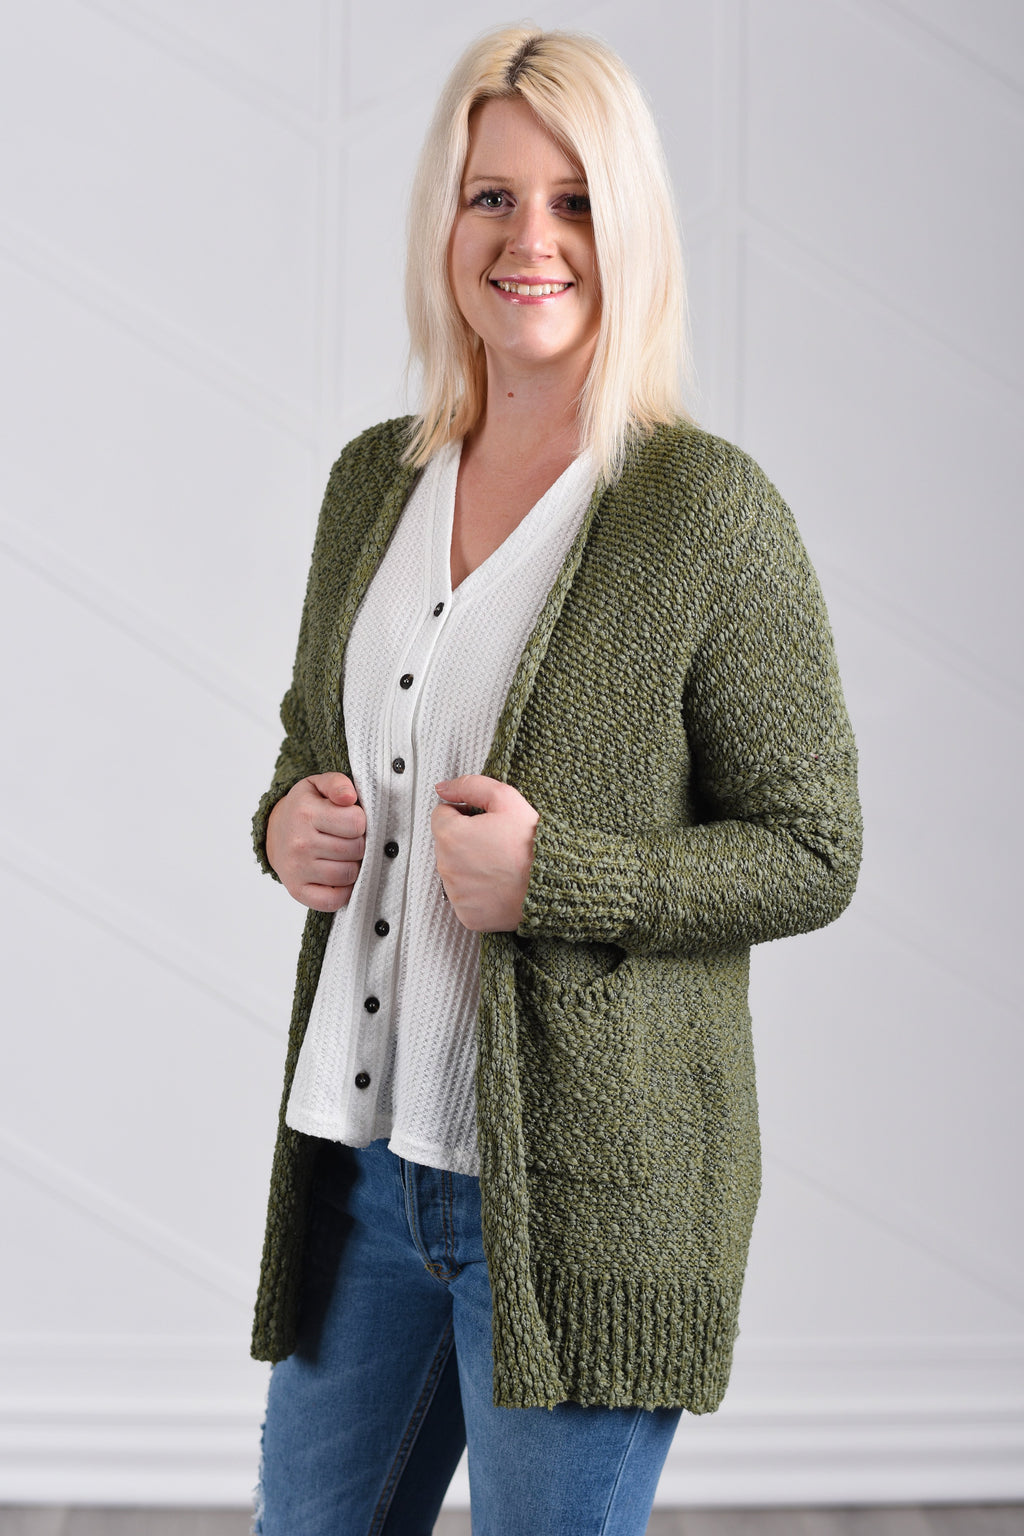 Gotta Have It Cardigan - Olive - women's boutique clothing Strong Confident You